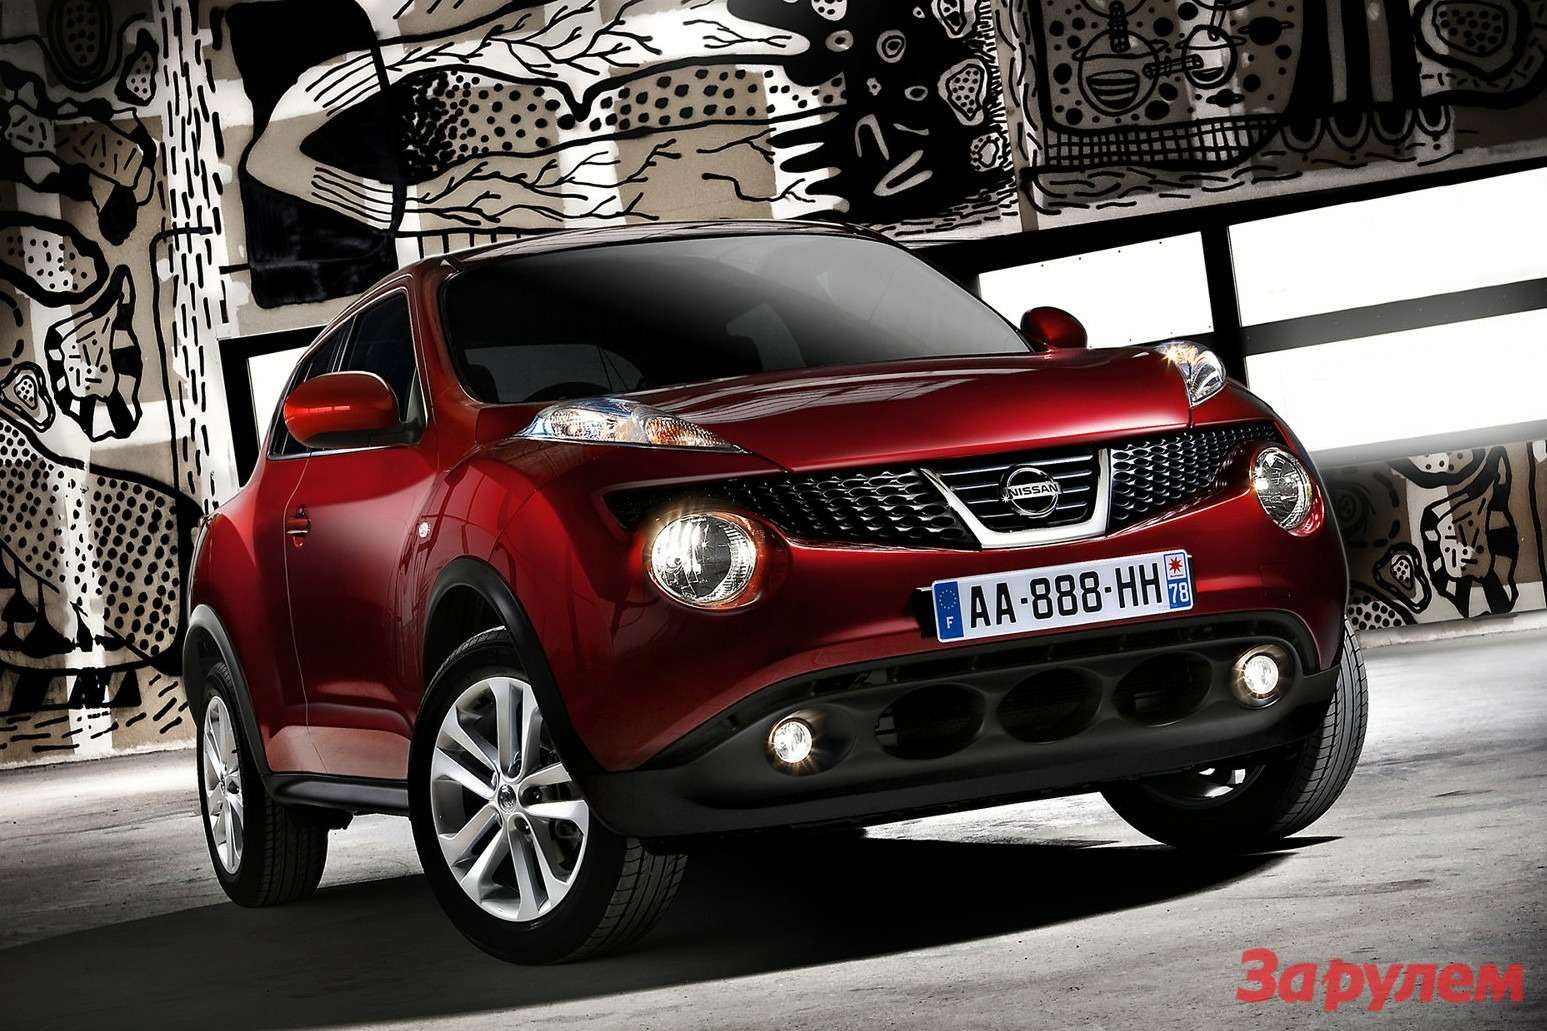 Nissan Juke 2011 1600x1200 wallpaper 01